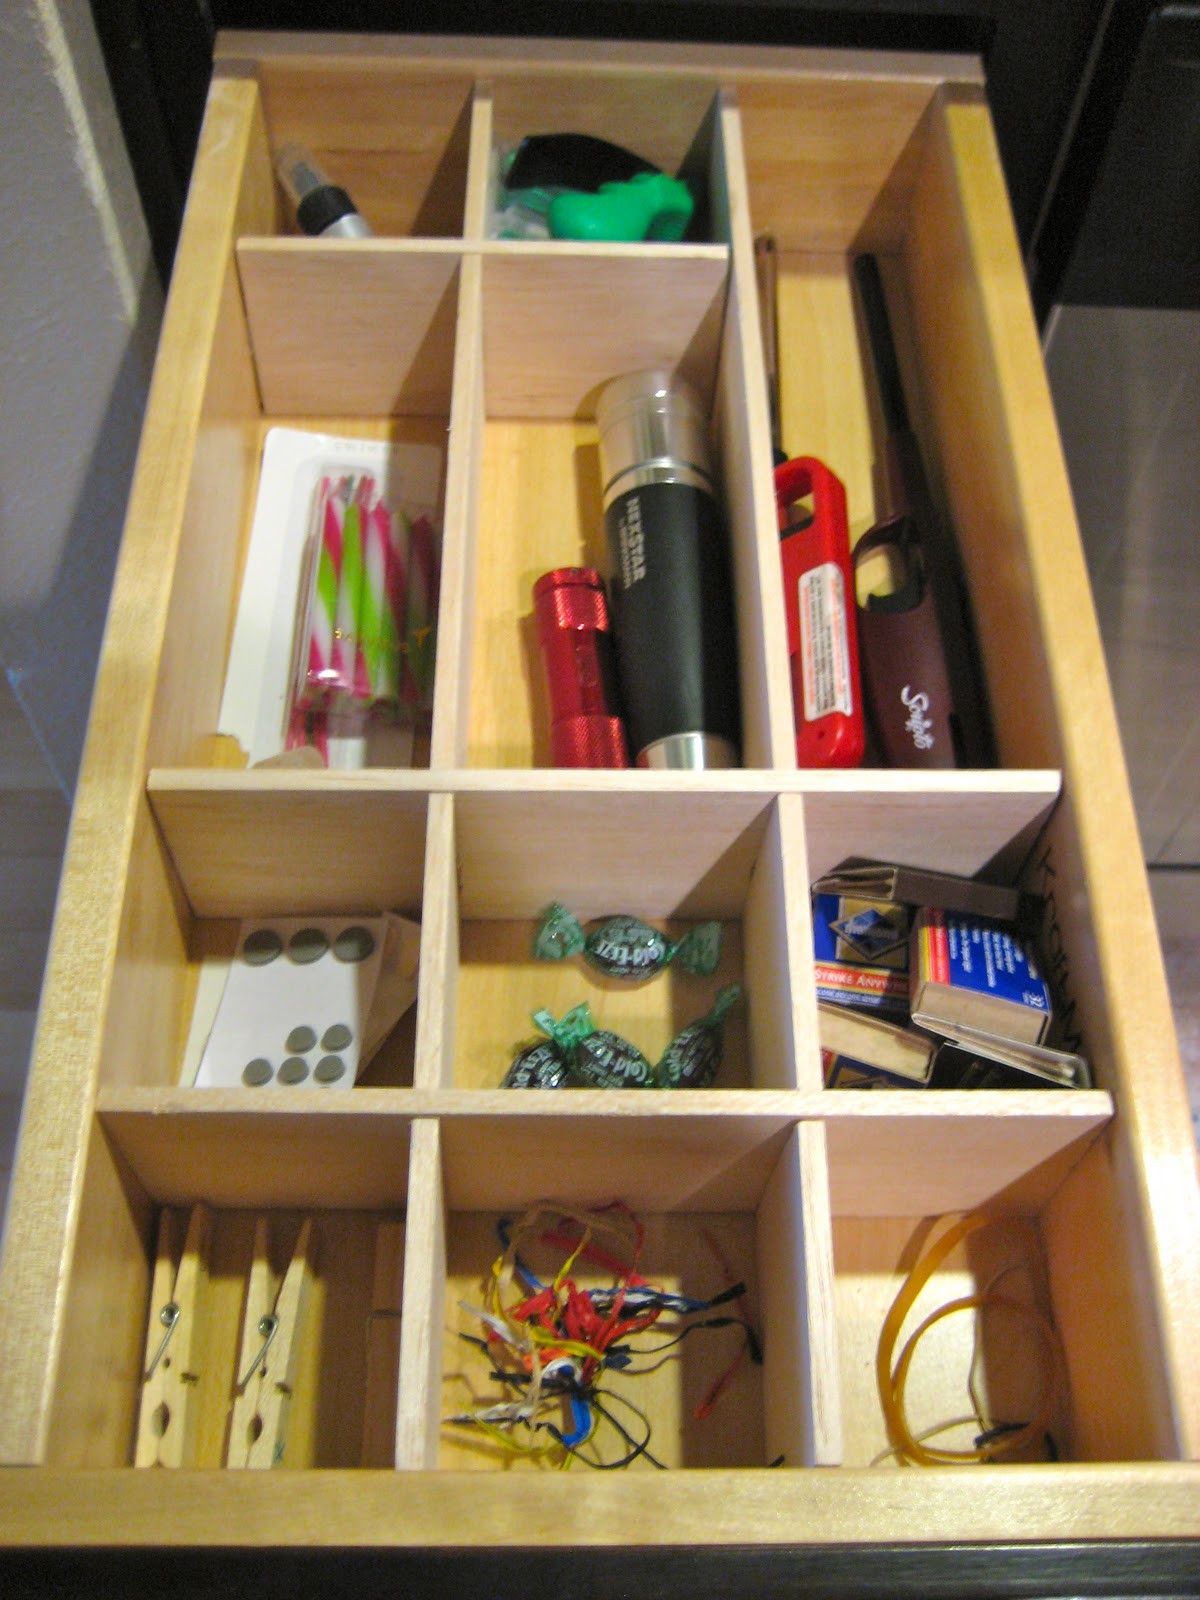 Best ideas about Drawer Dividers DIY . Save or Pin C R A F T 72 Drawer Organizer Part 2 C R A F T Now.